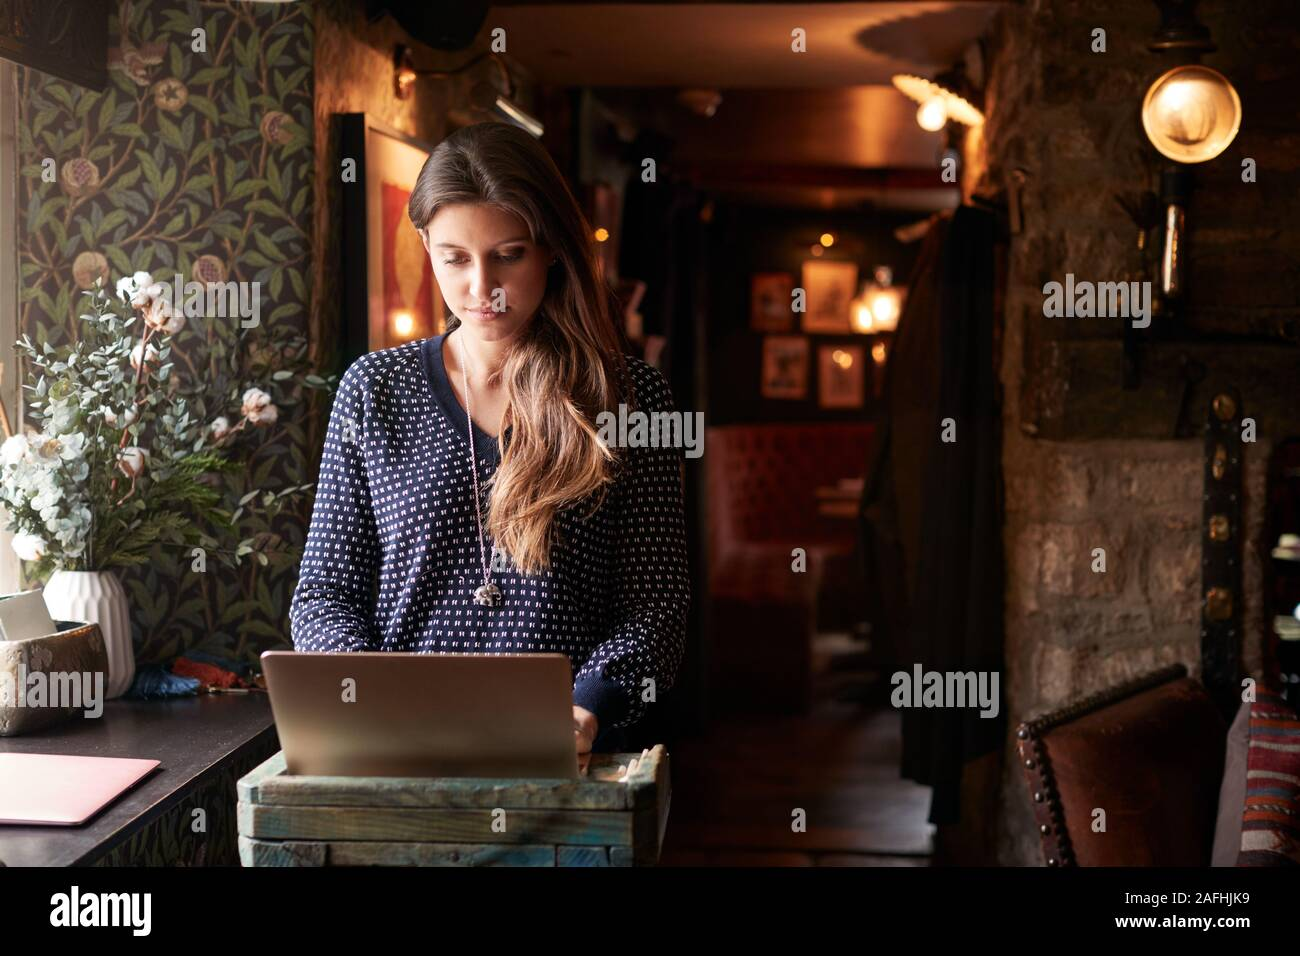 Female Receptionist Working On Laptop At Hotel Check In Stock Photo